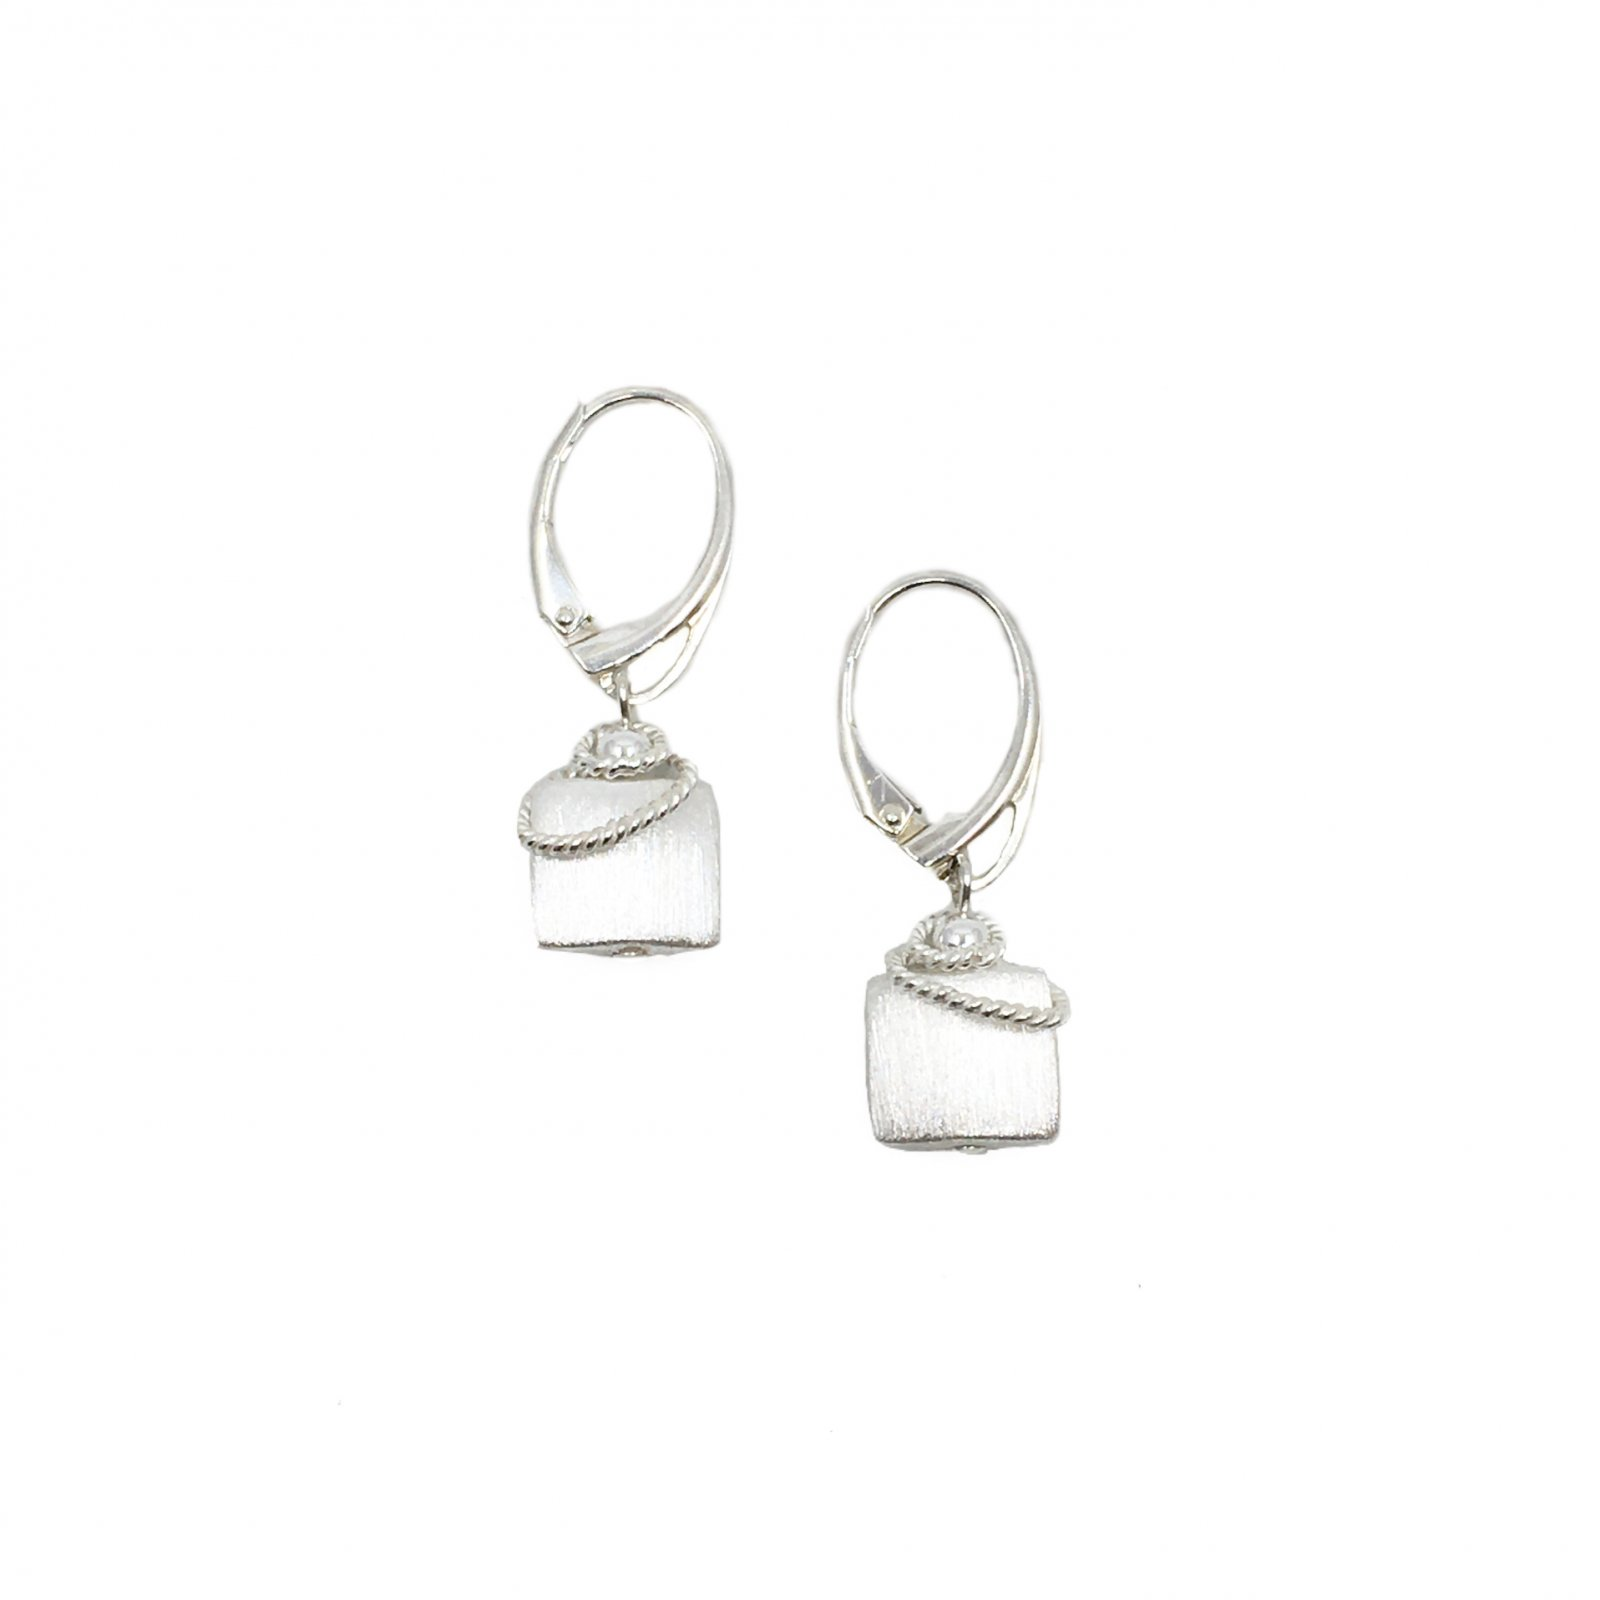 Naomi Square Twist Earrings